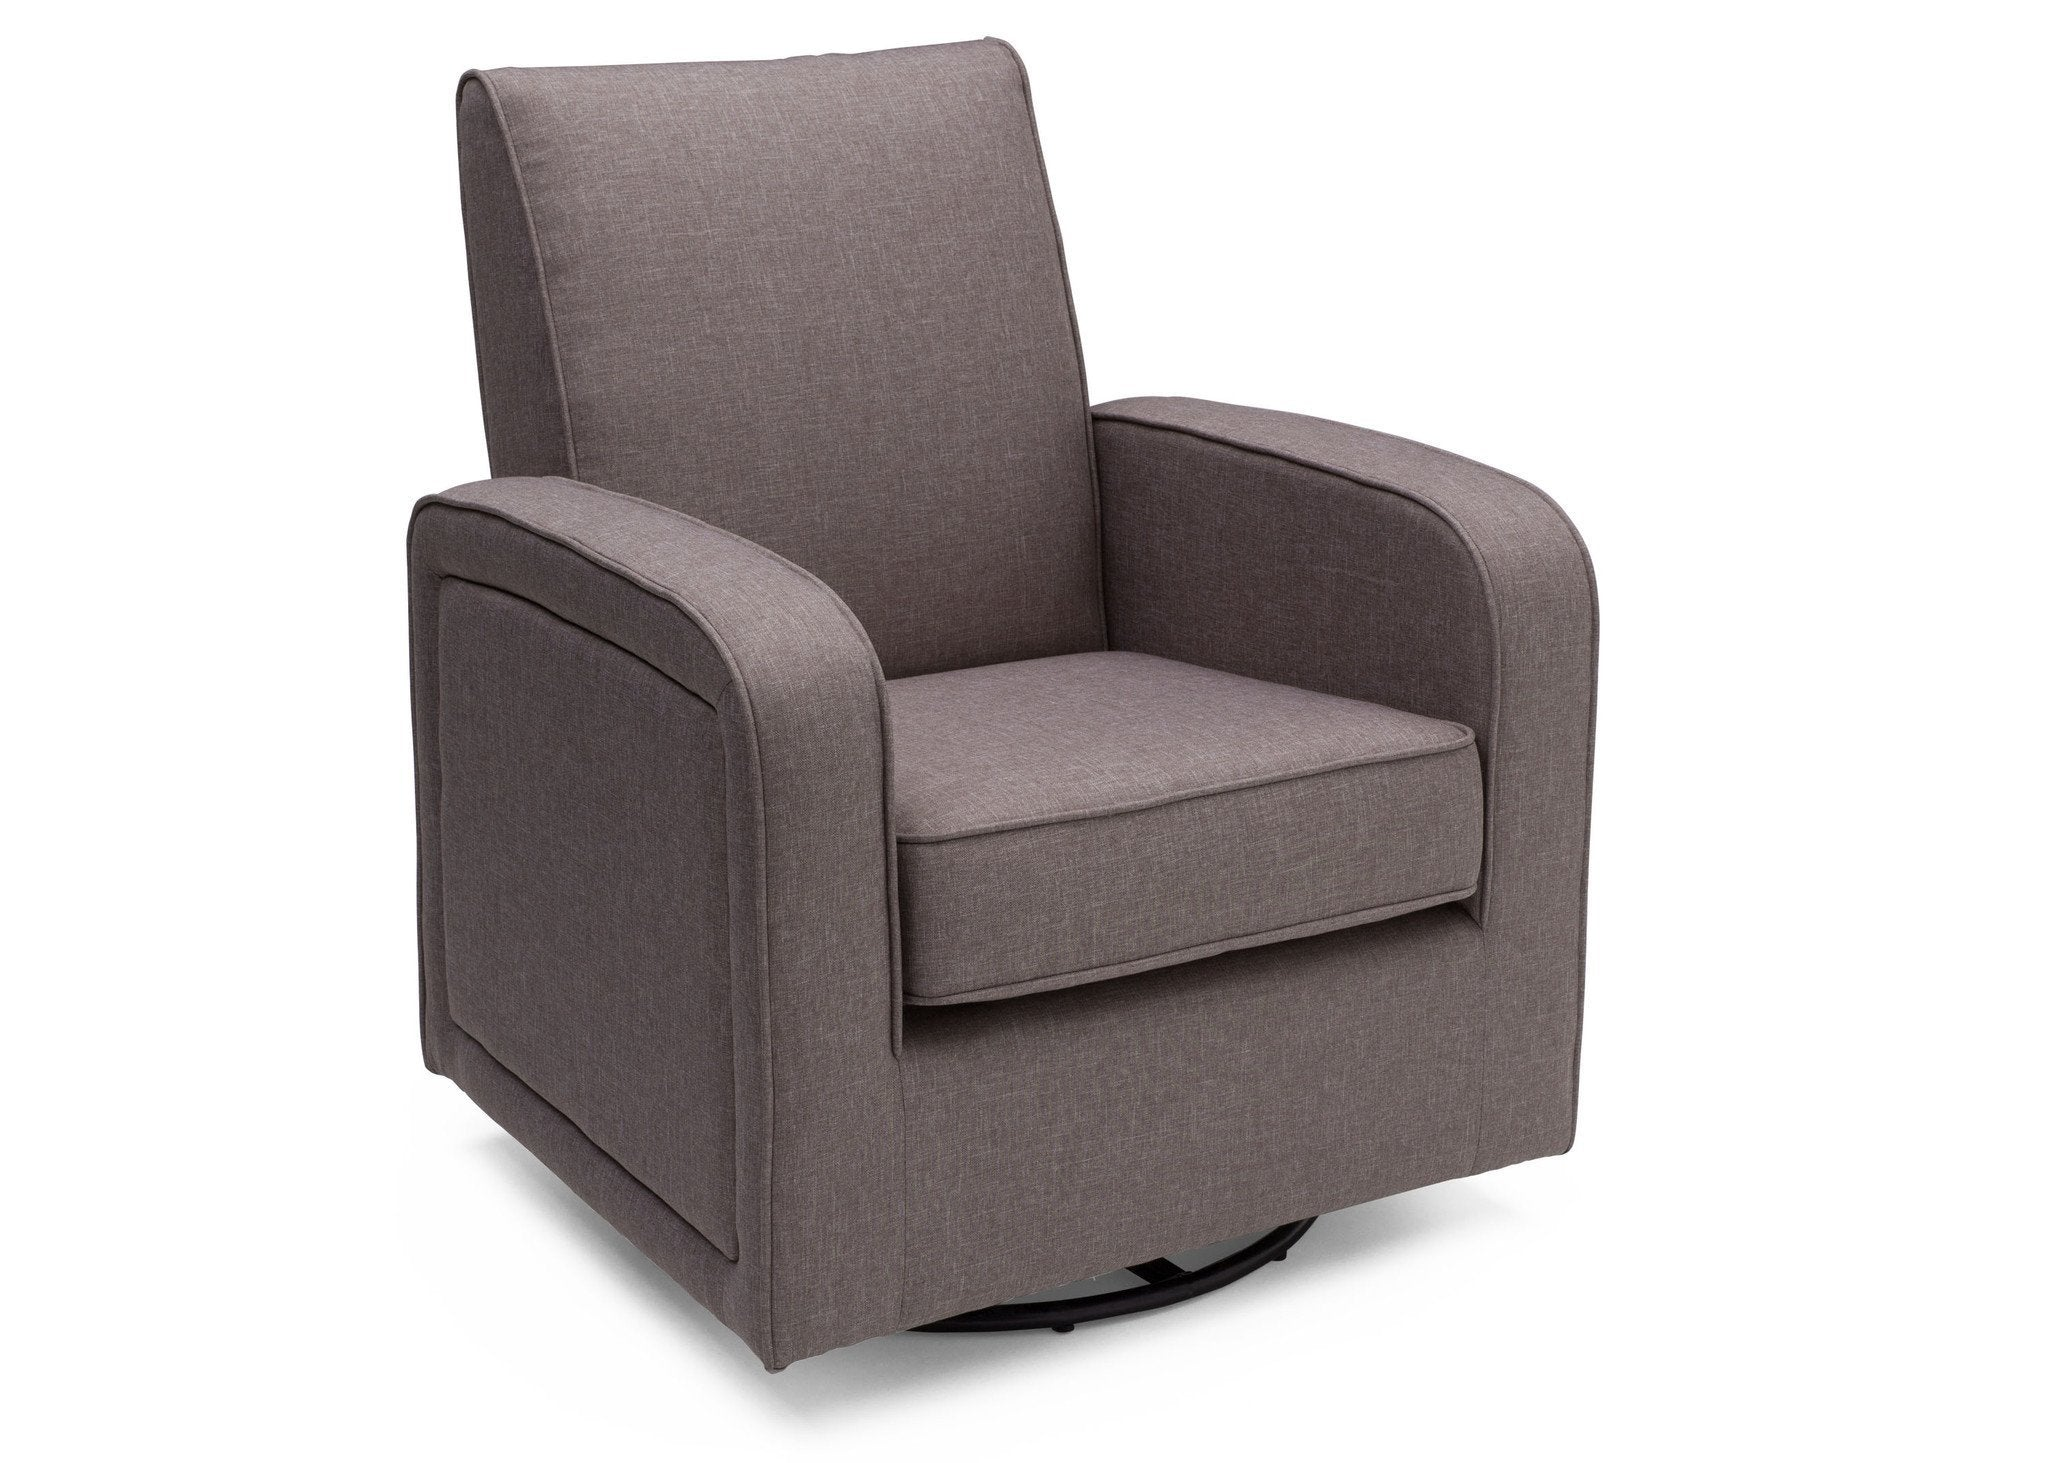 Delta Children Twilight Grey (076) Charlotte Nursery Glider Swivel Rocker Chair, Right Side View, a3a